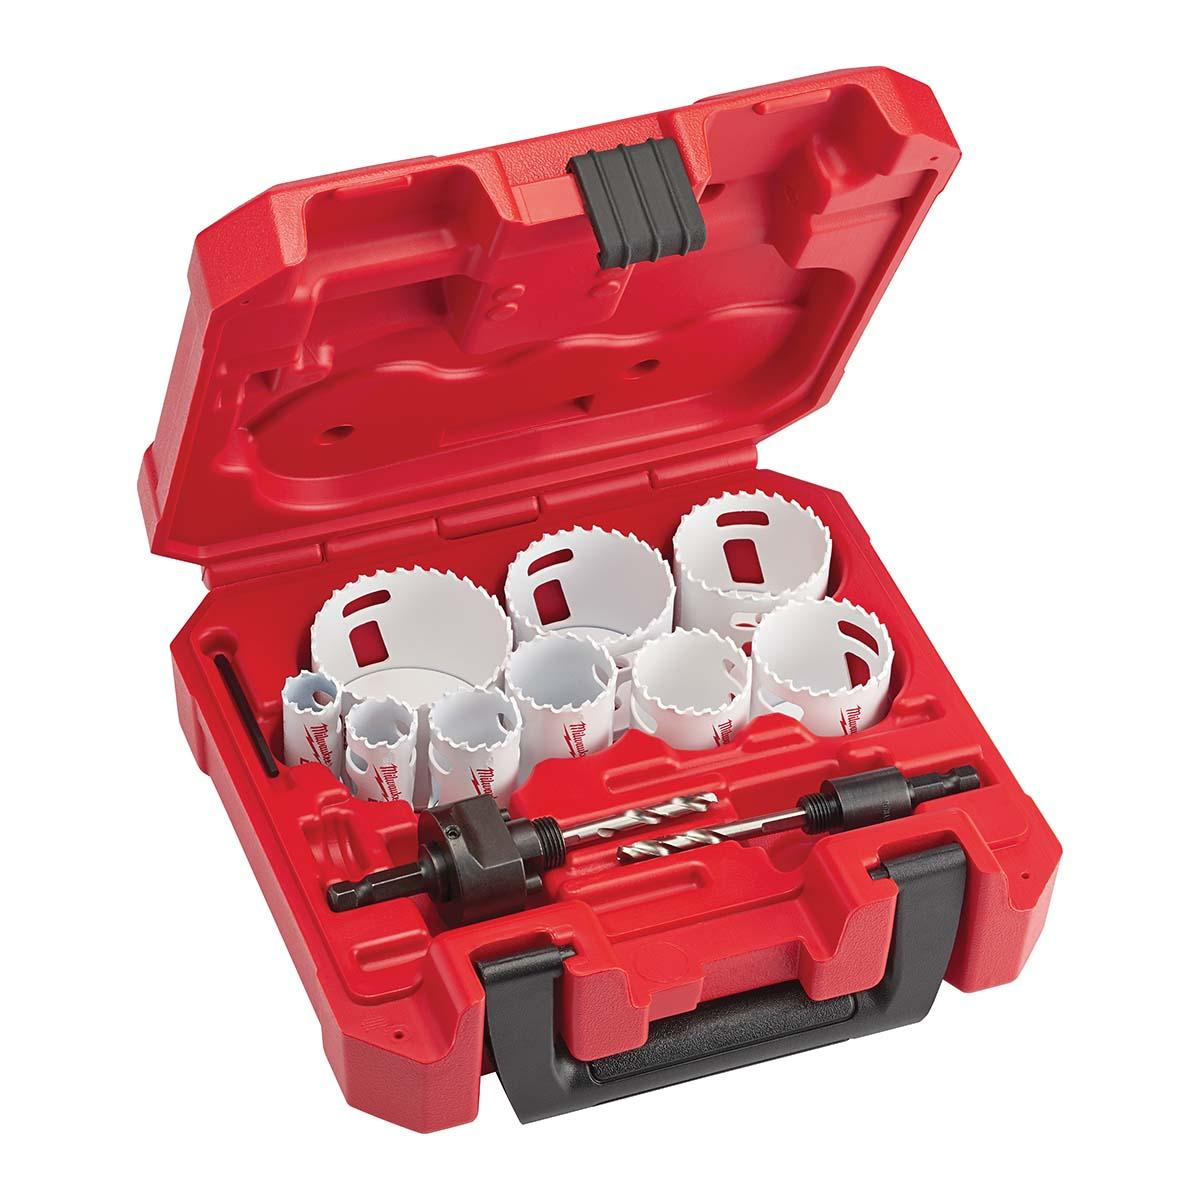 "13 PC General Purpose Hole Dozerâ""¢ Hole Saw Kit"